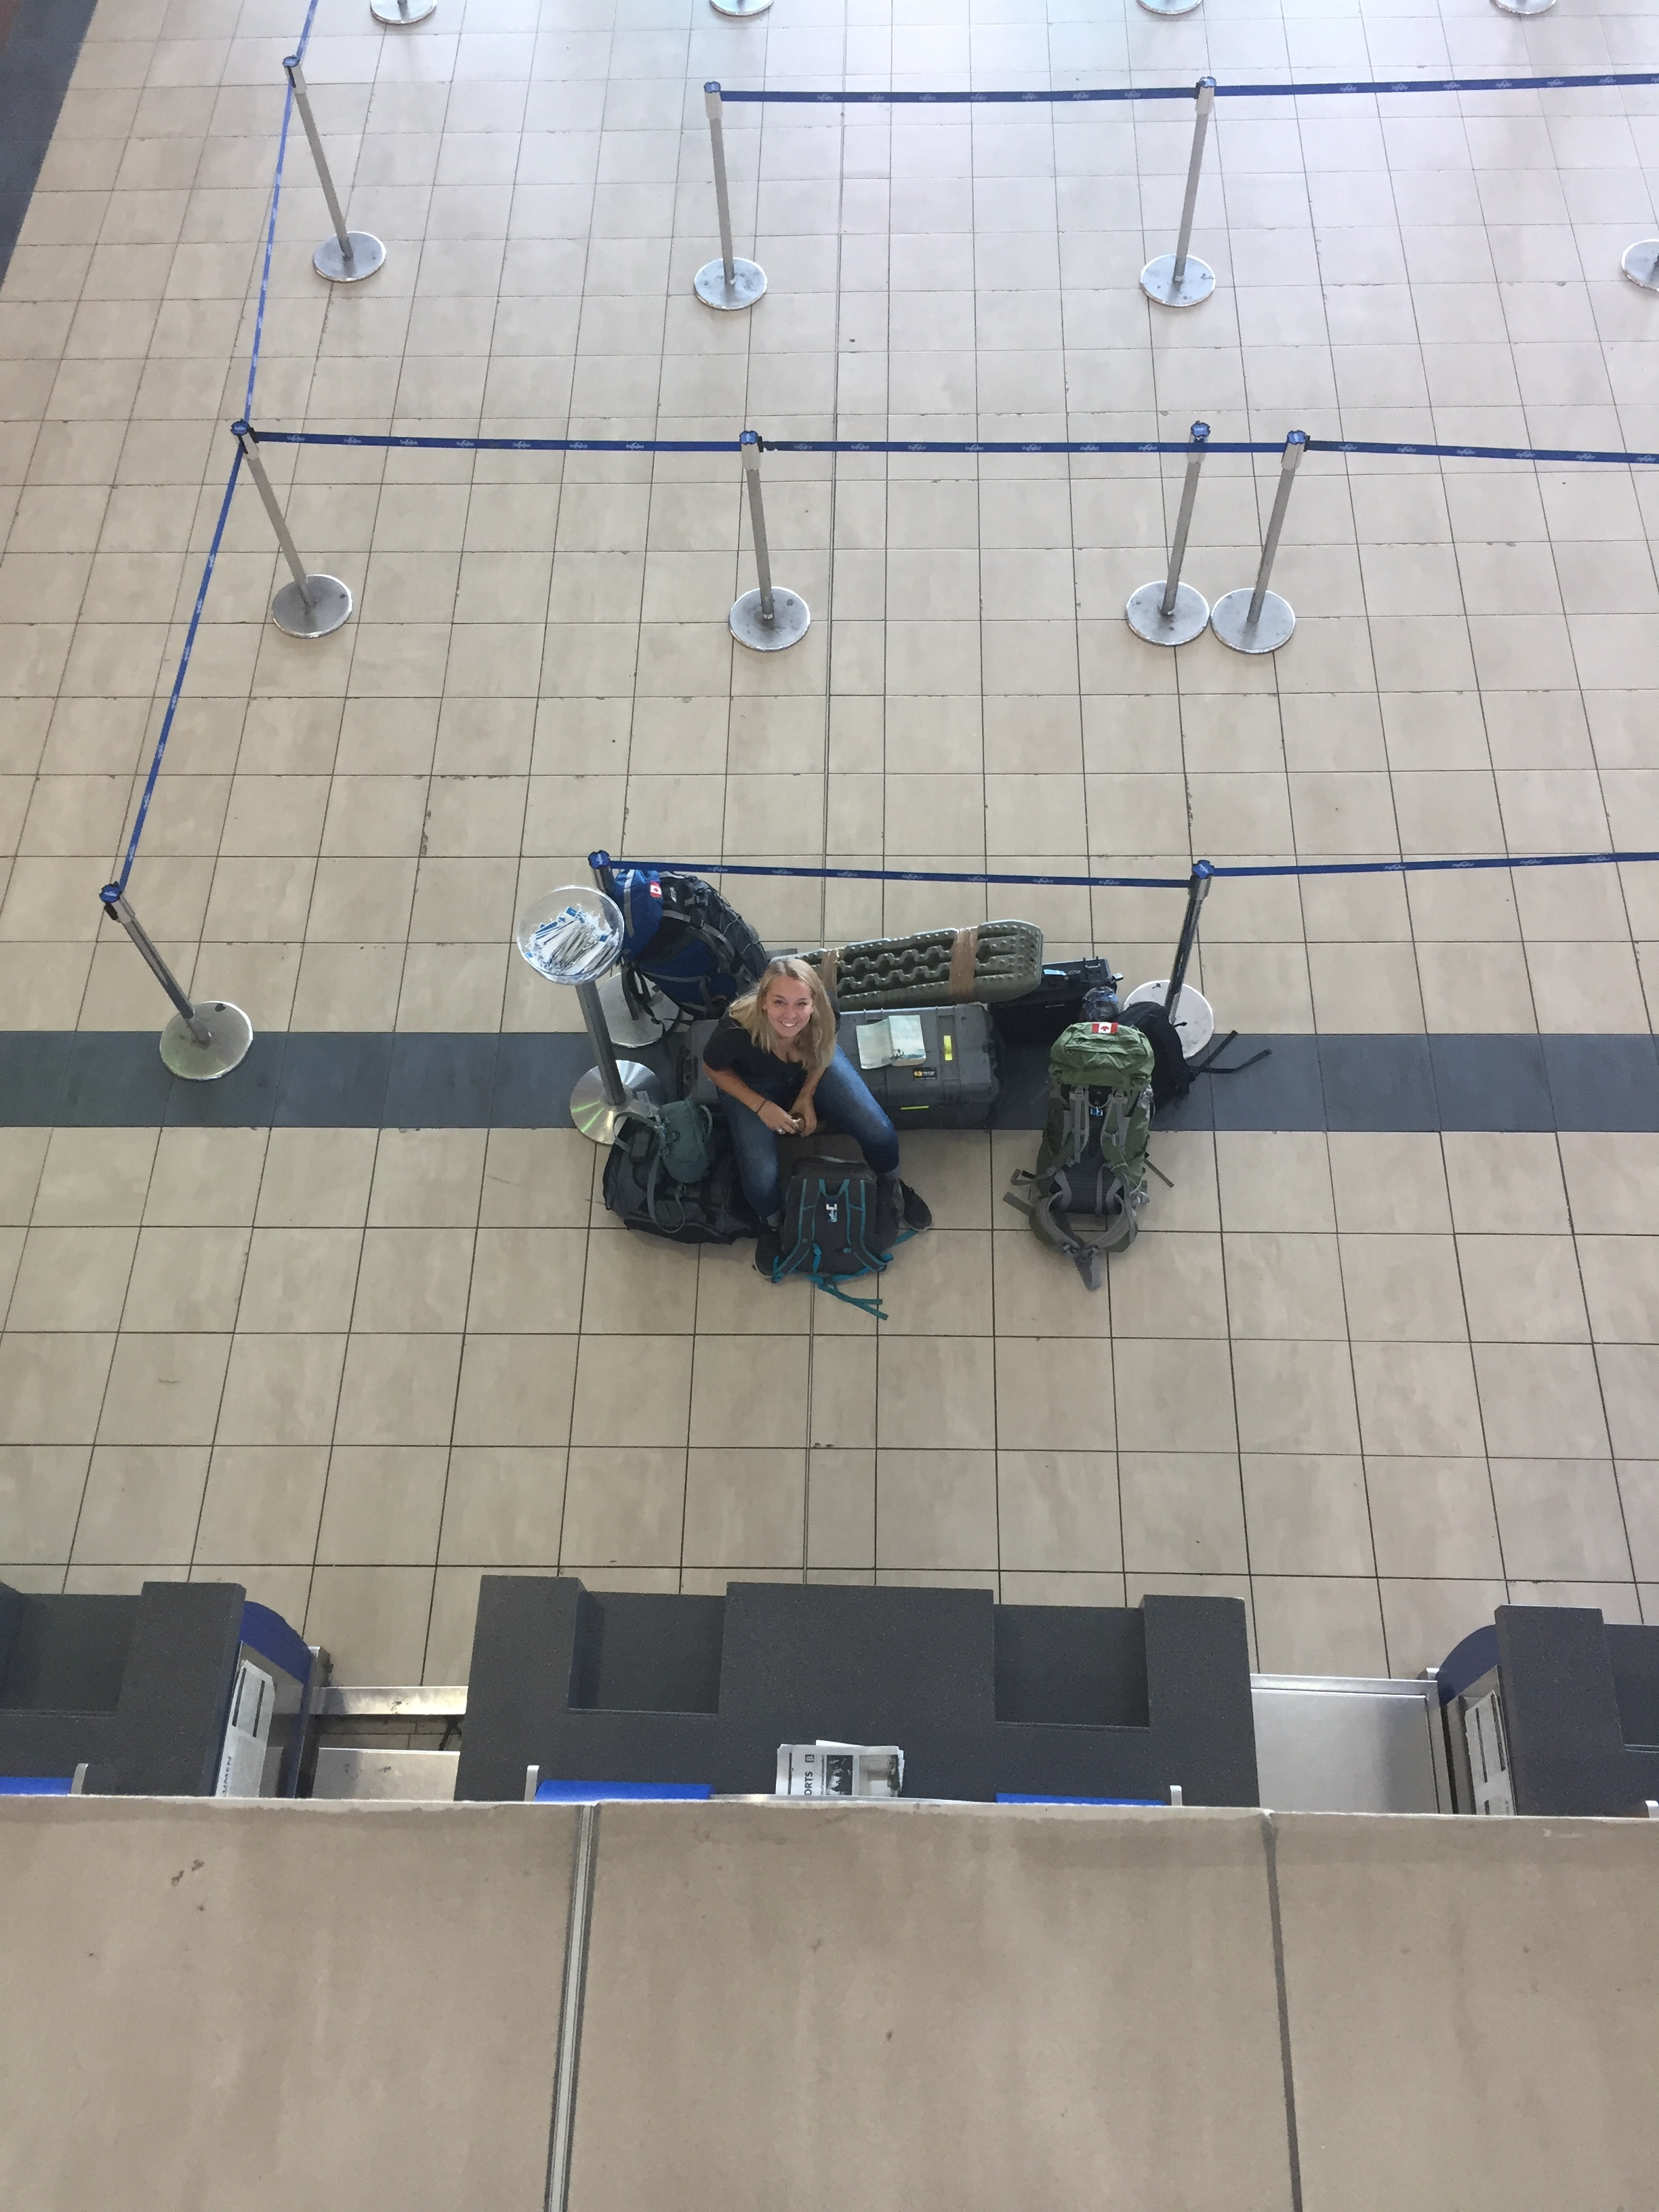 Danielle with all of our baggage waiting to check in to our flight out of Tocumen International.